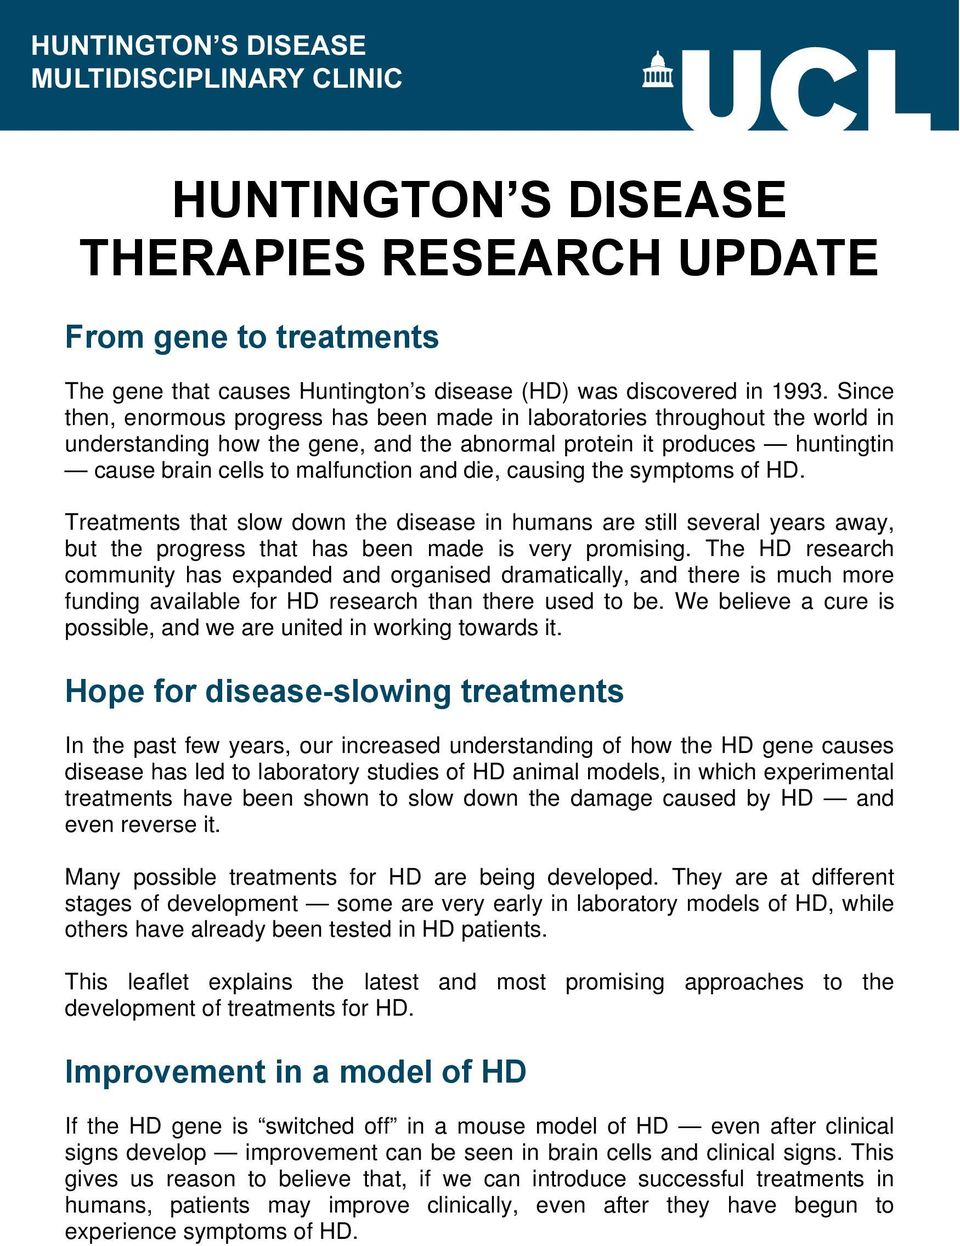 die, causing the symptoms of HD. Treatments that slow down the disease in humans are still several years away, but the progress that has been made is very promising.